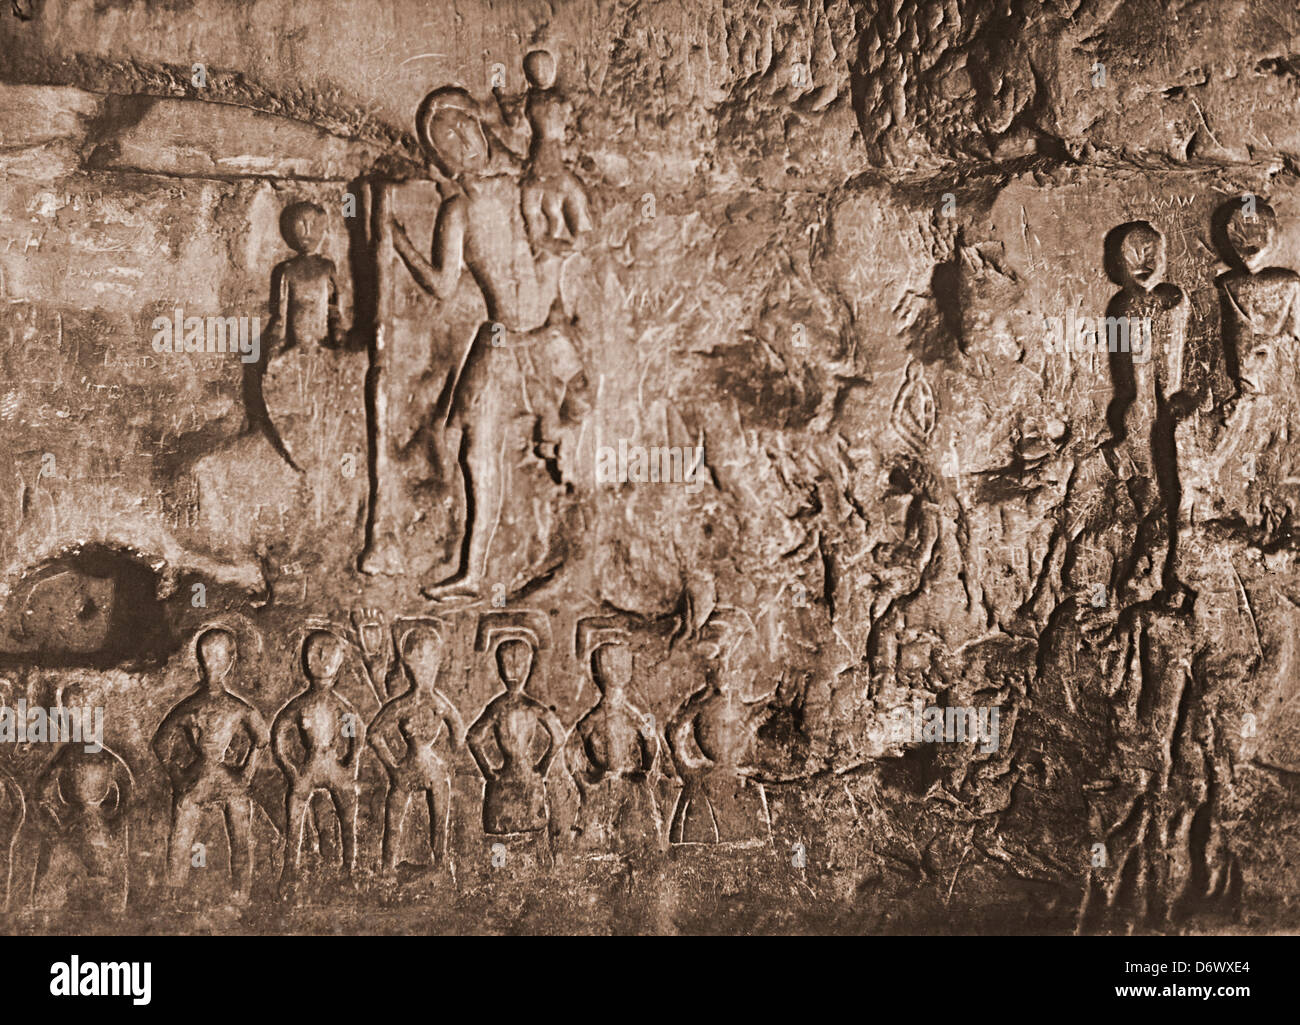 Northern carved wall of Royston Cave a site possibly used by Knights Templar, Royston, Hertfordshire, England, UK - Stock Image